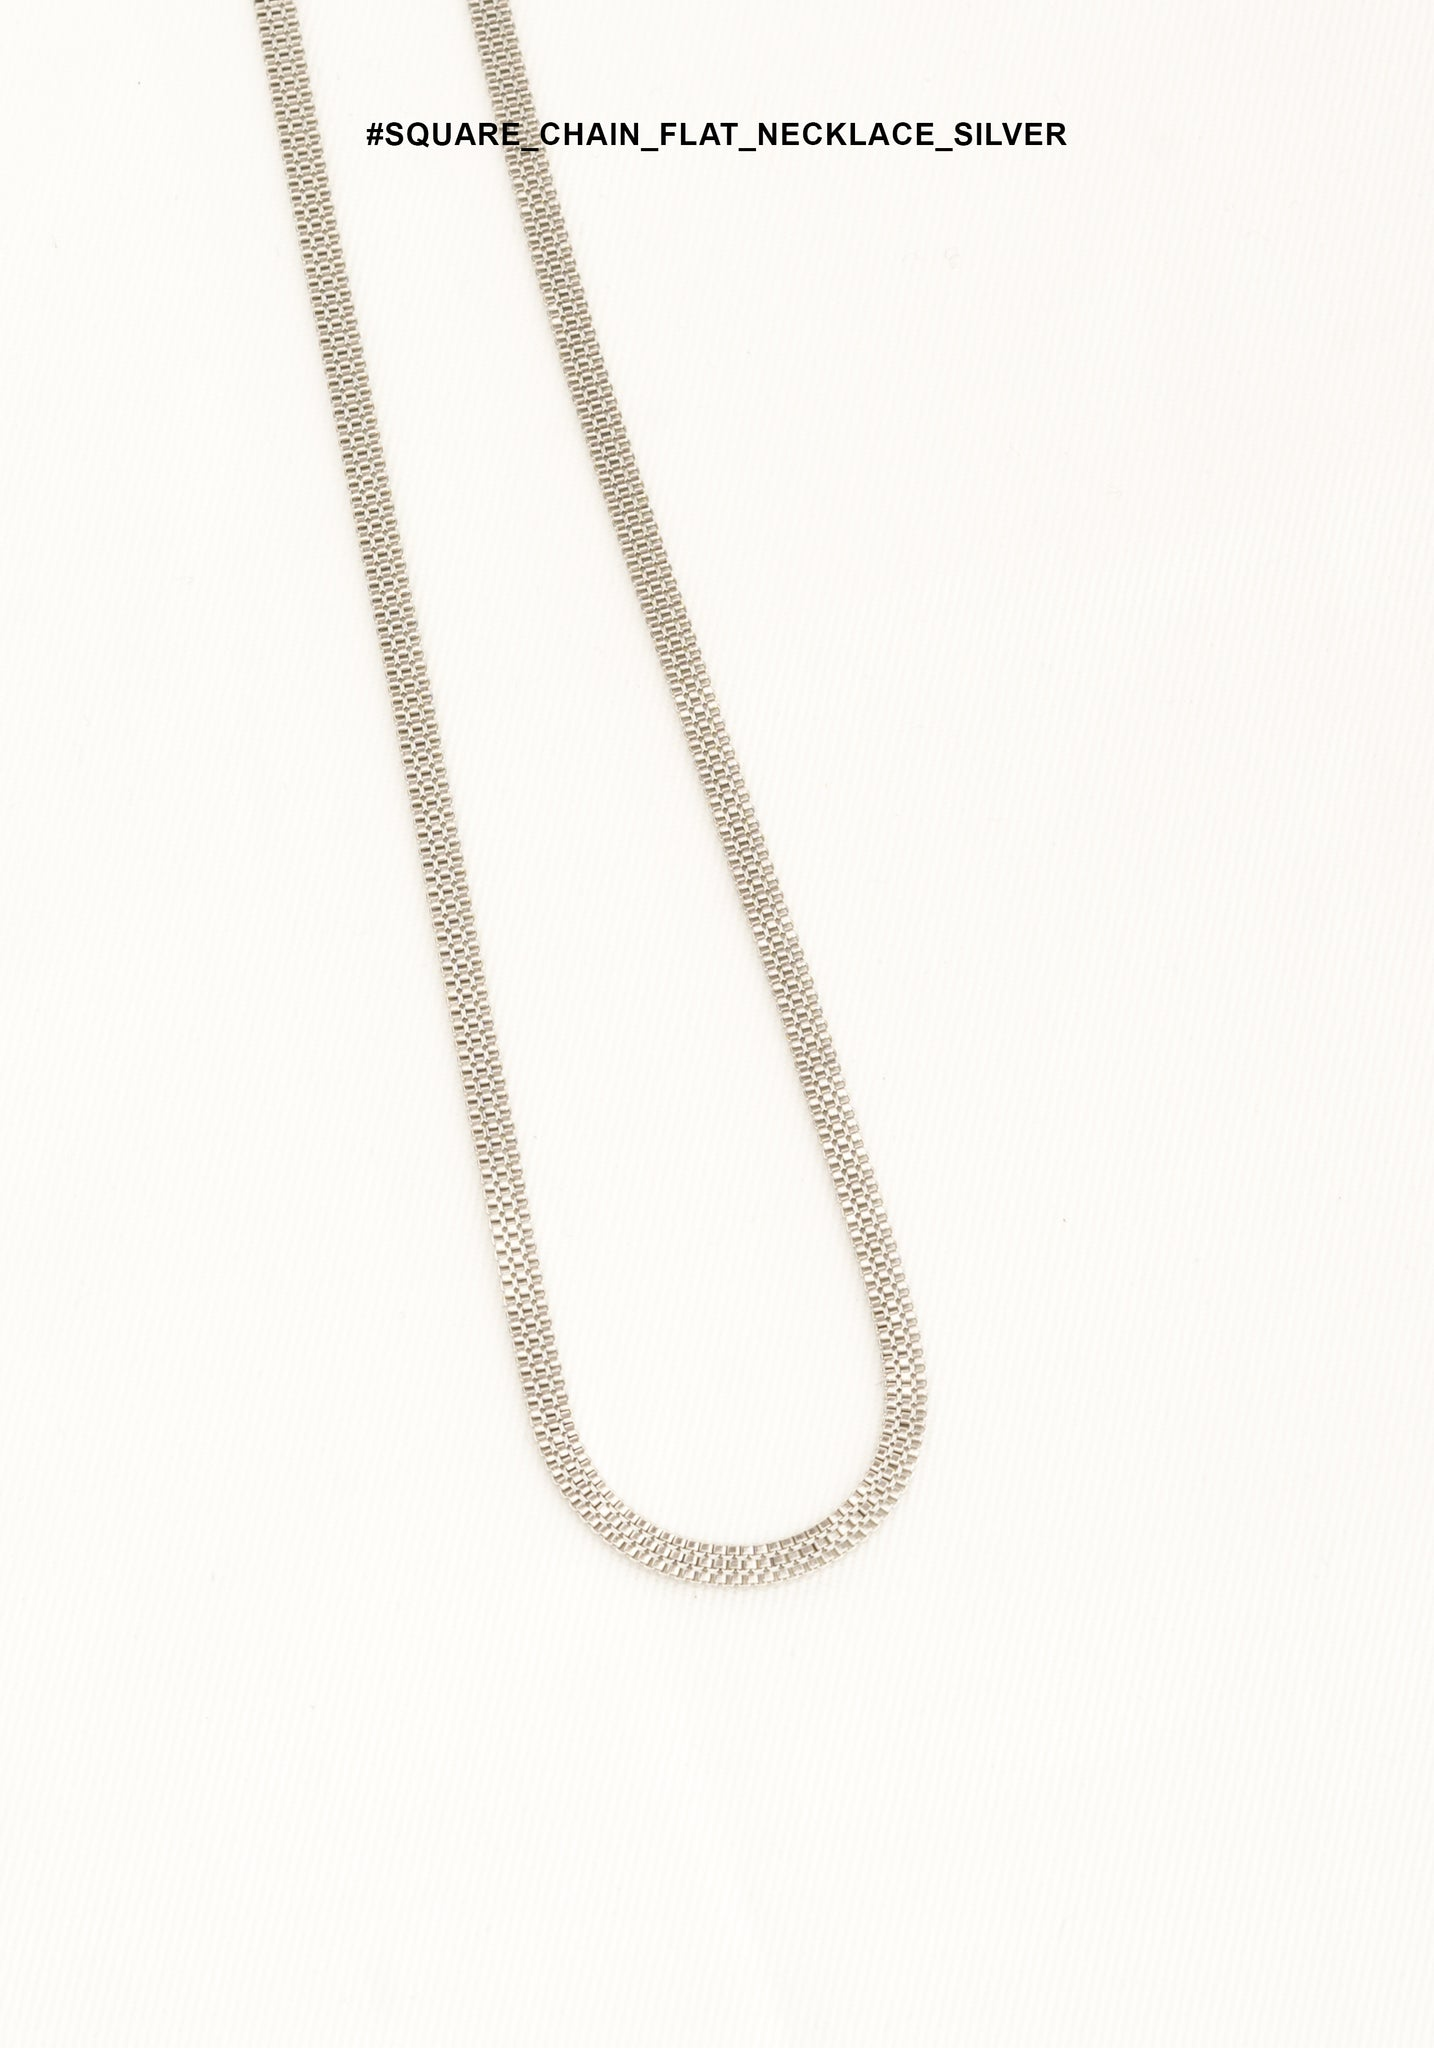 Square Chain Flat Necklace Silver - whoami